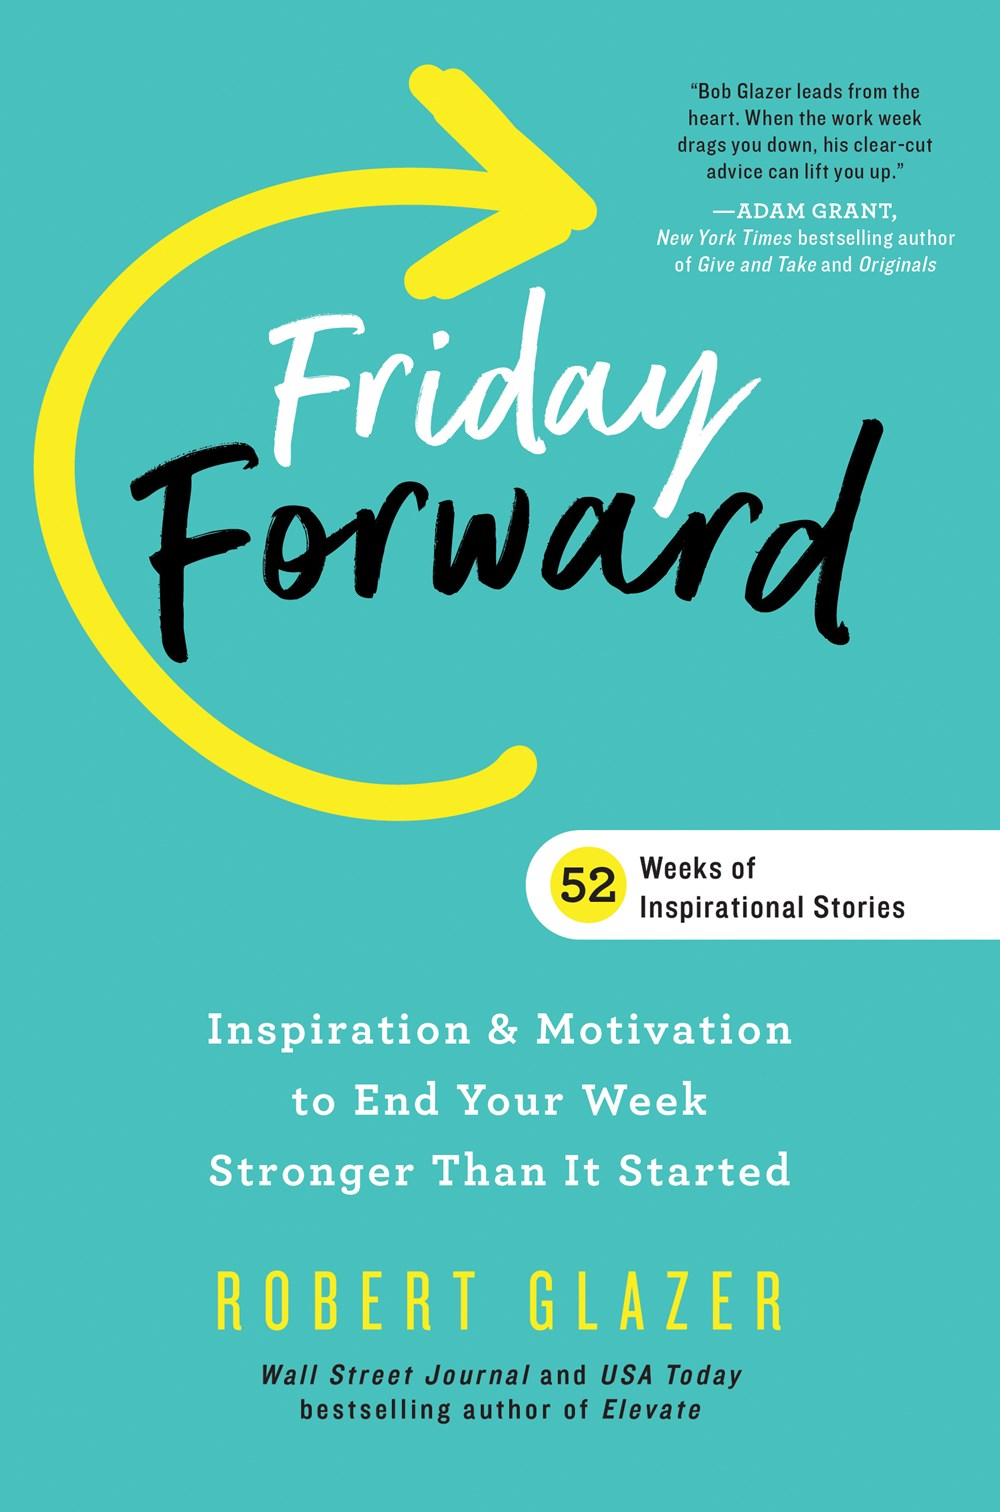 Friday Forward Inspiration & Motivation to End Your Week Stronger Than It Started